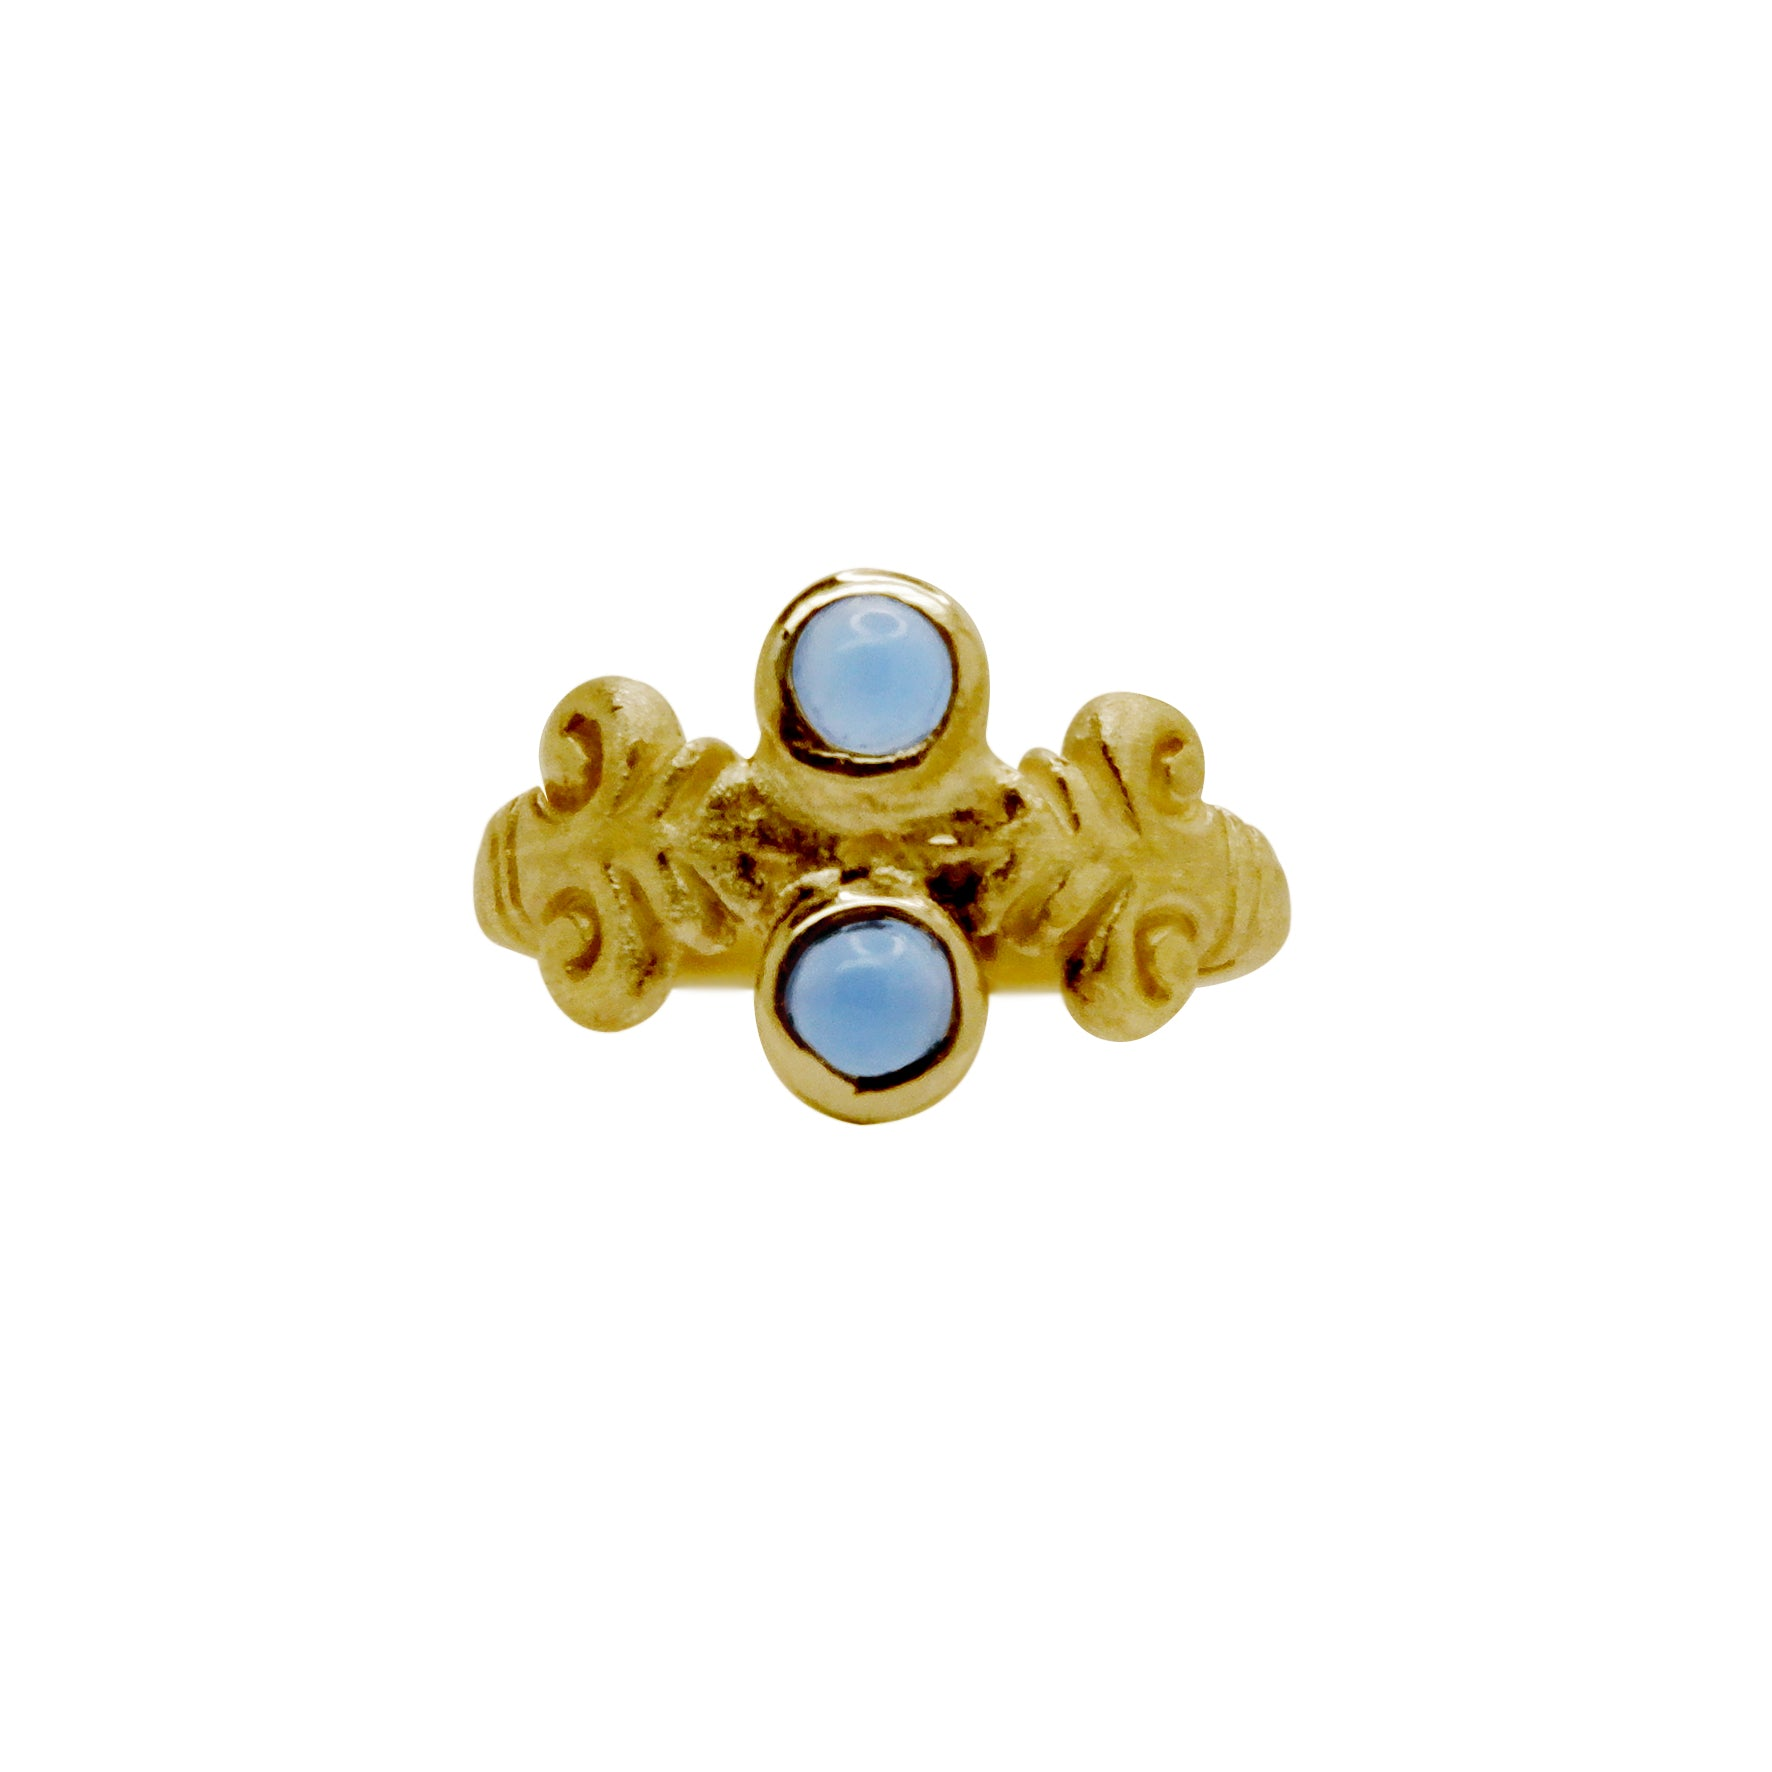 Hunt Of Hounds Acanthus Ring in Gold with Blue Lace Agate gemstones. Botanical leaf ring with classical detail.